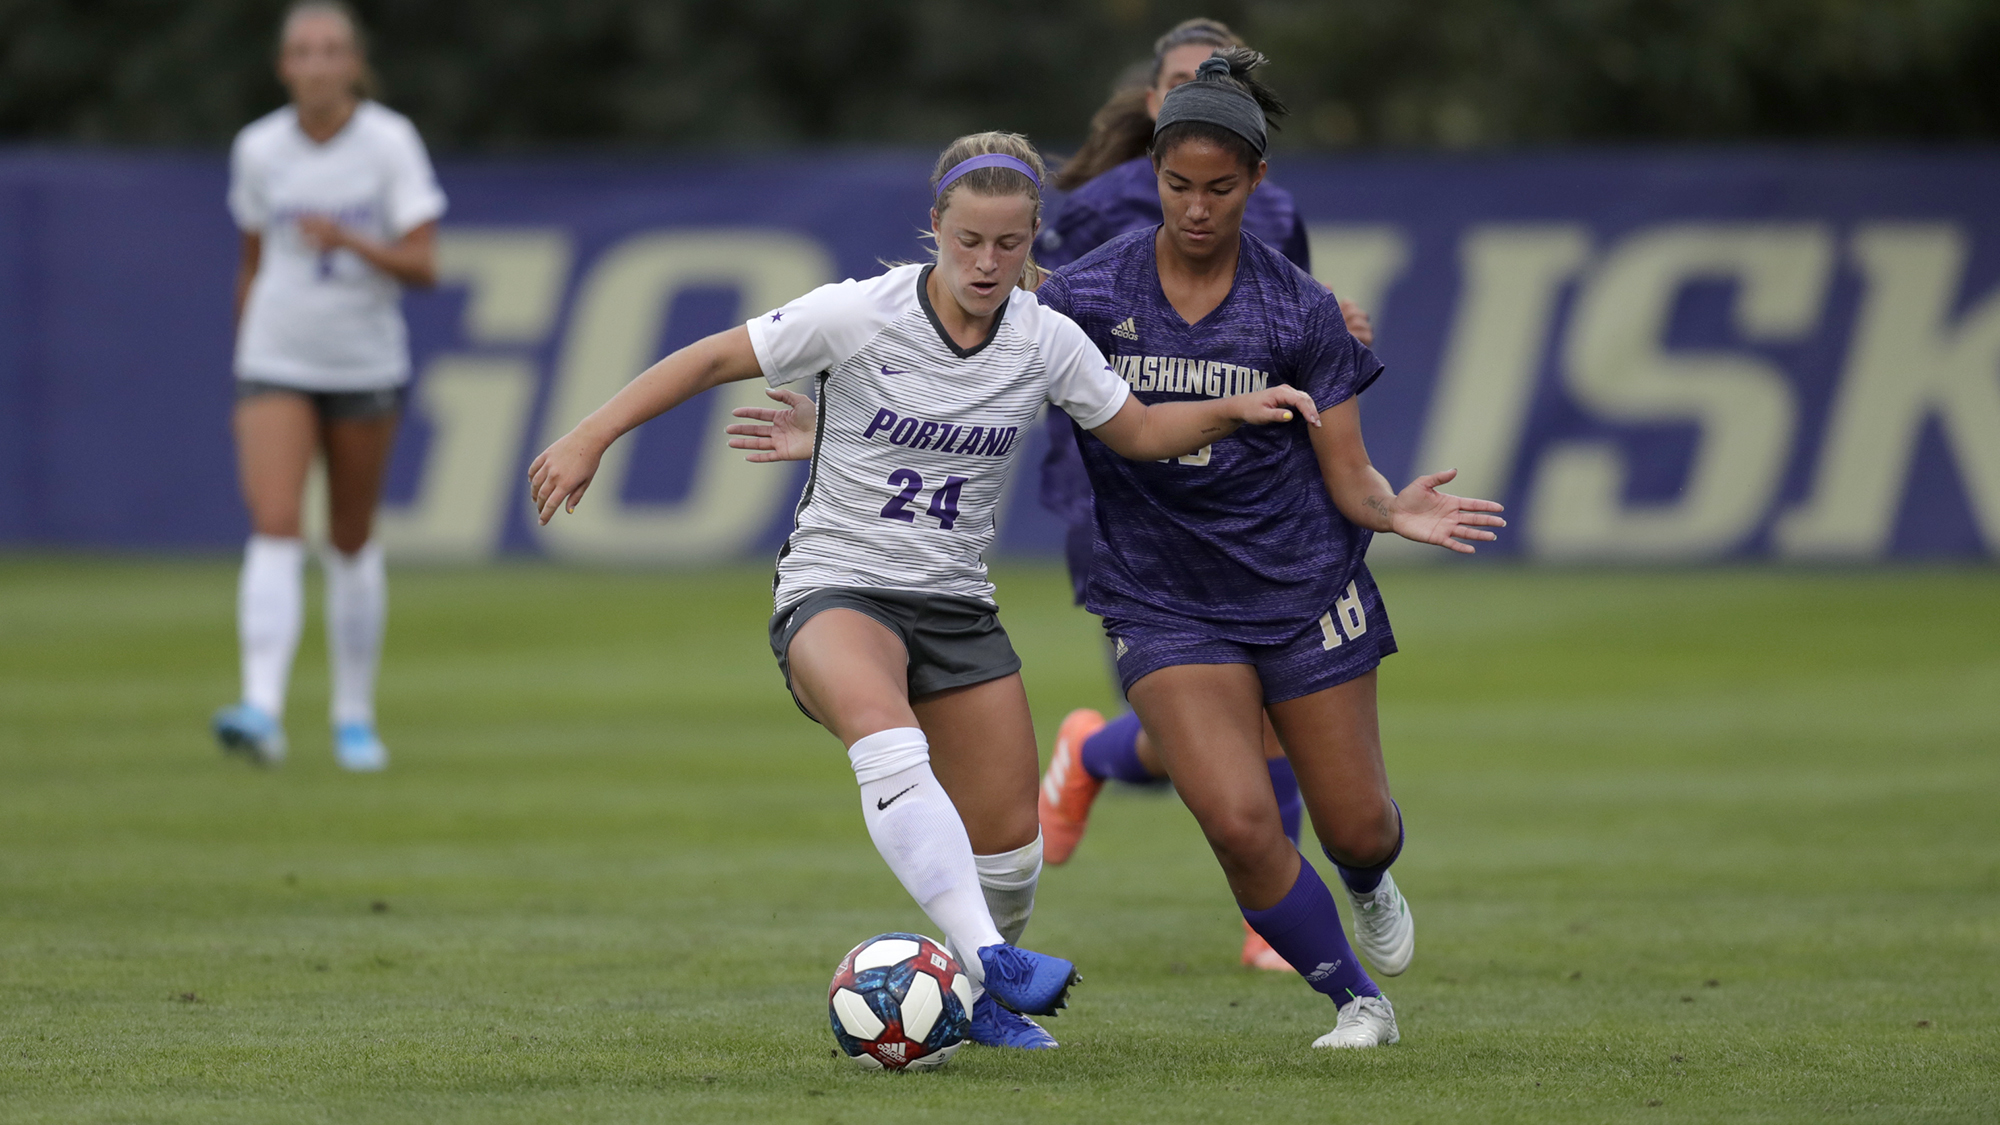 Pilots Earn a Point on the Road with 0-0 Draw at UW